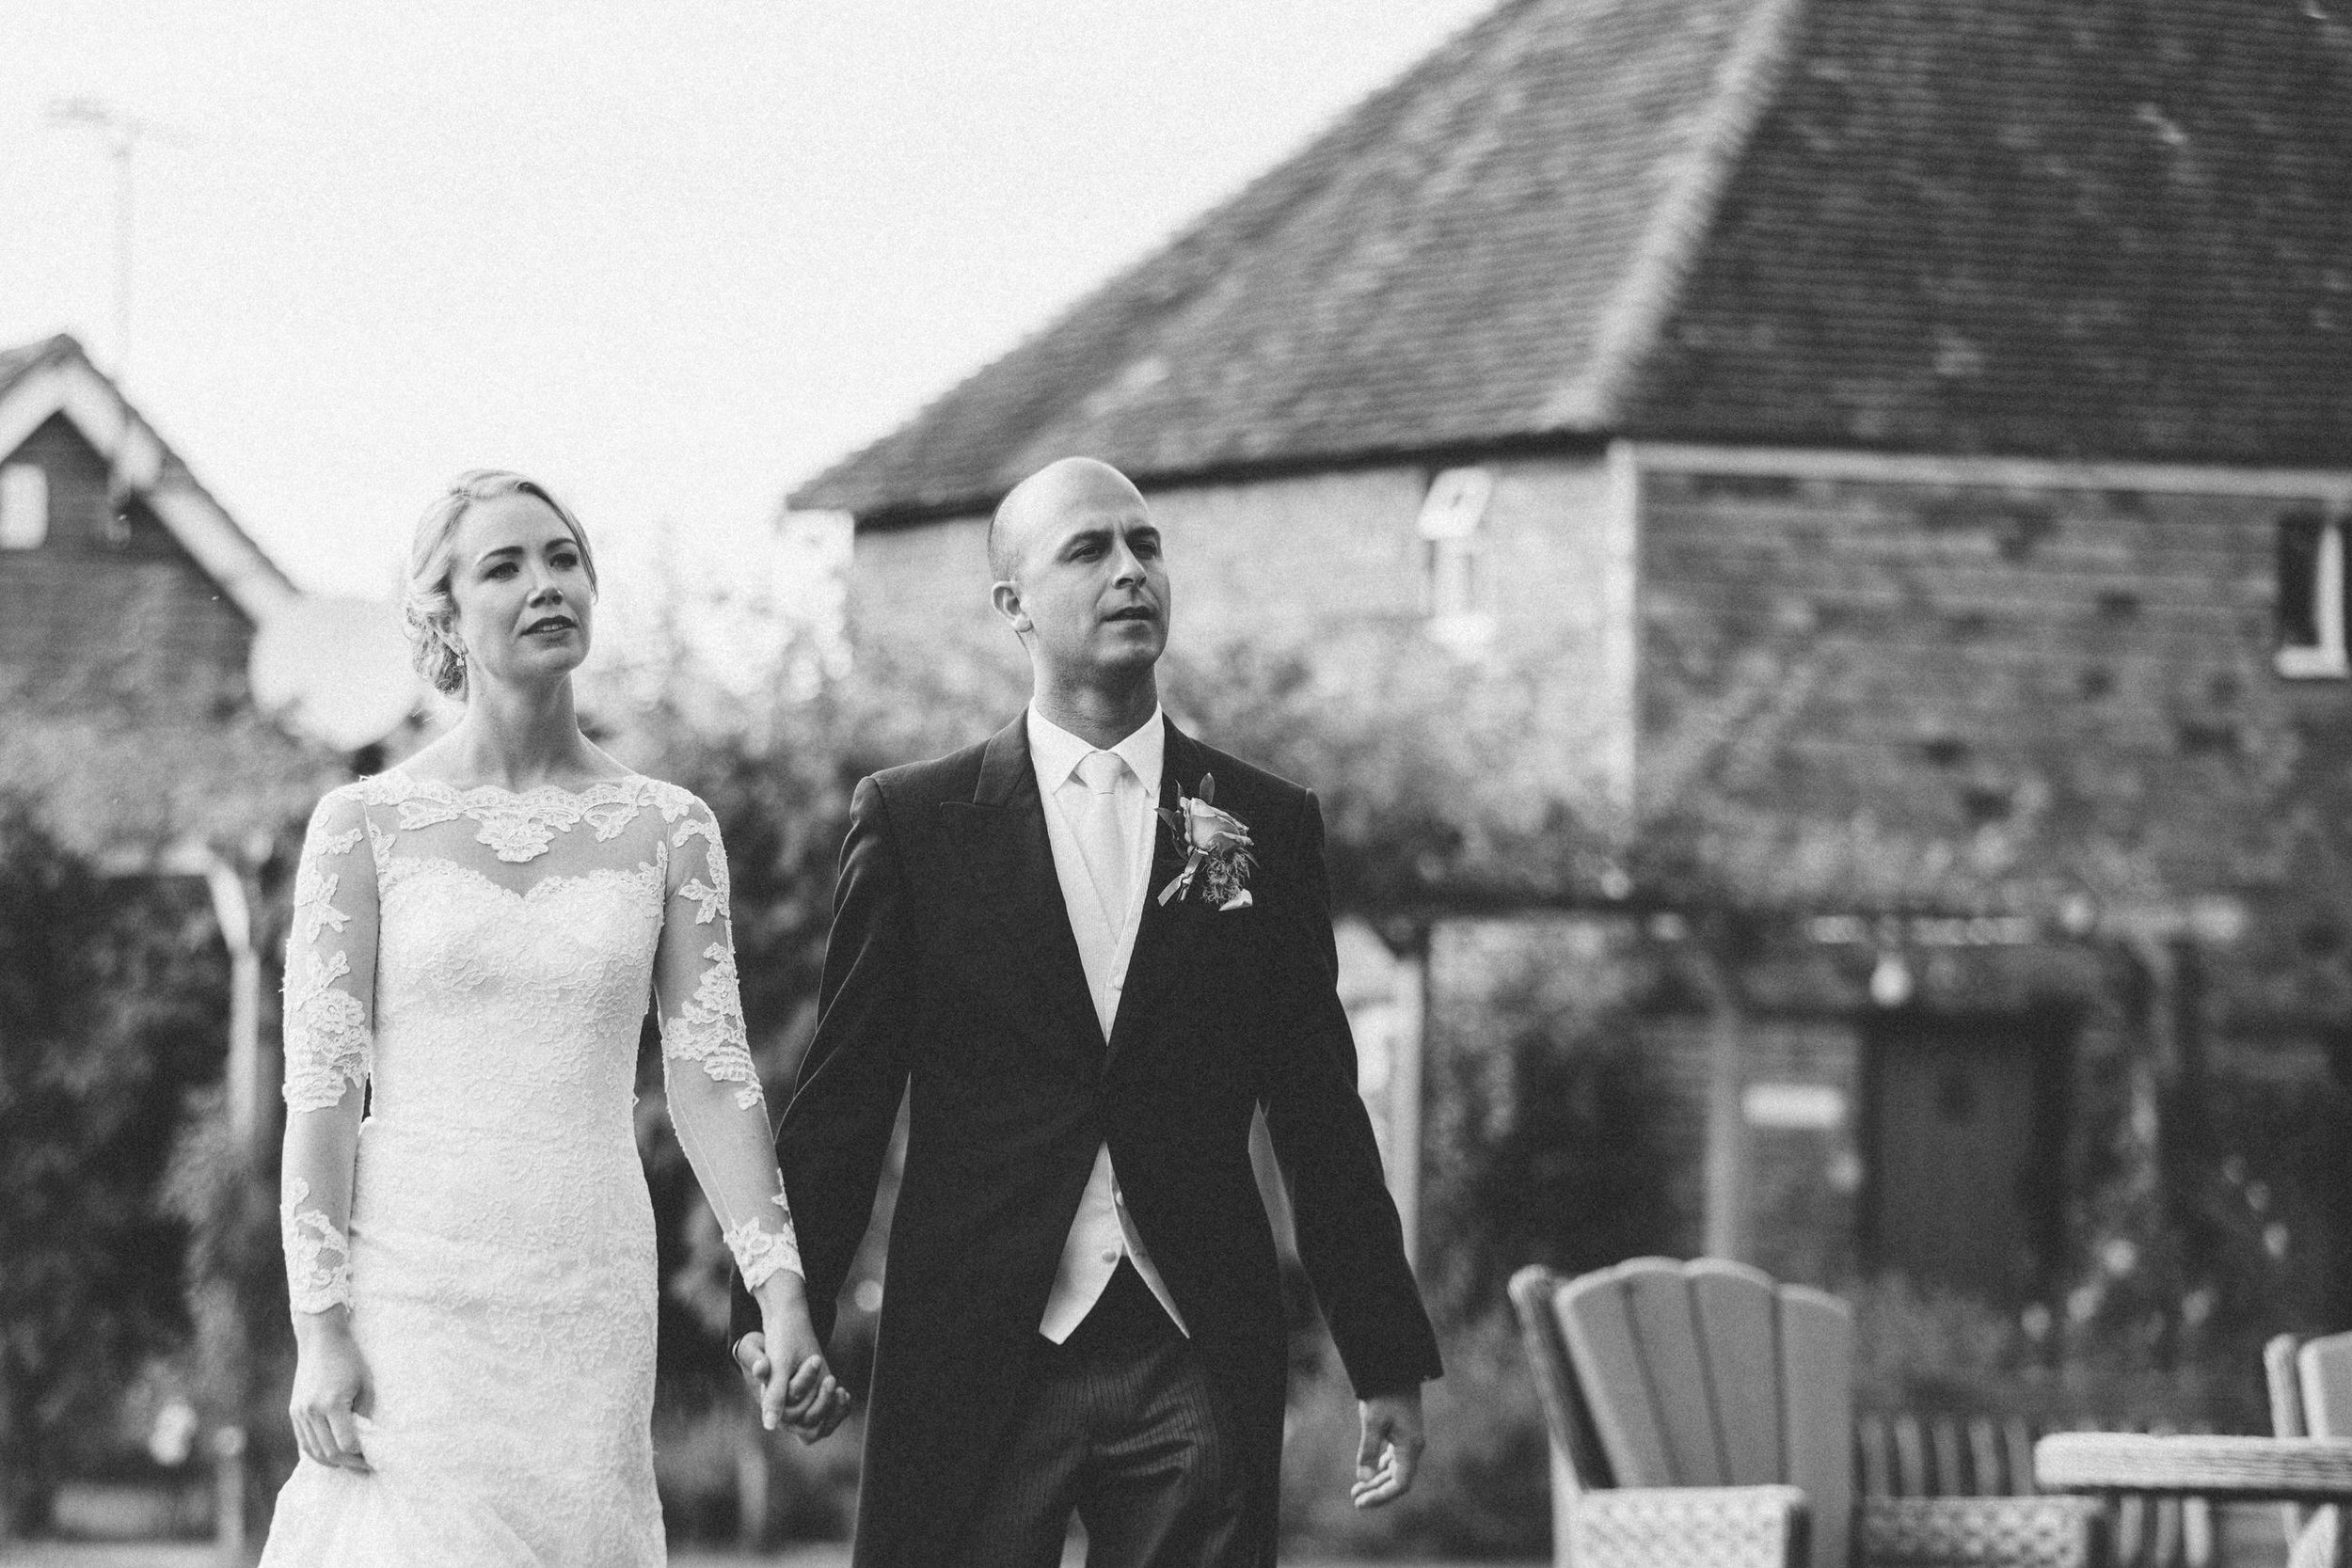 Biddenden Wedding Photographer 0120.jpg